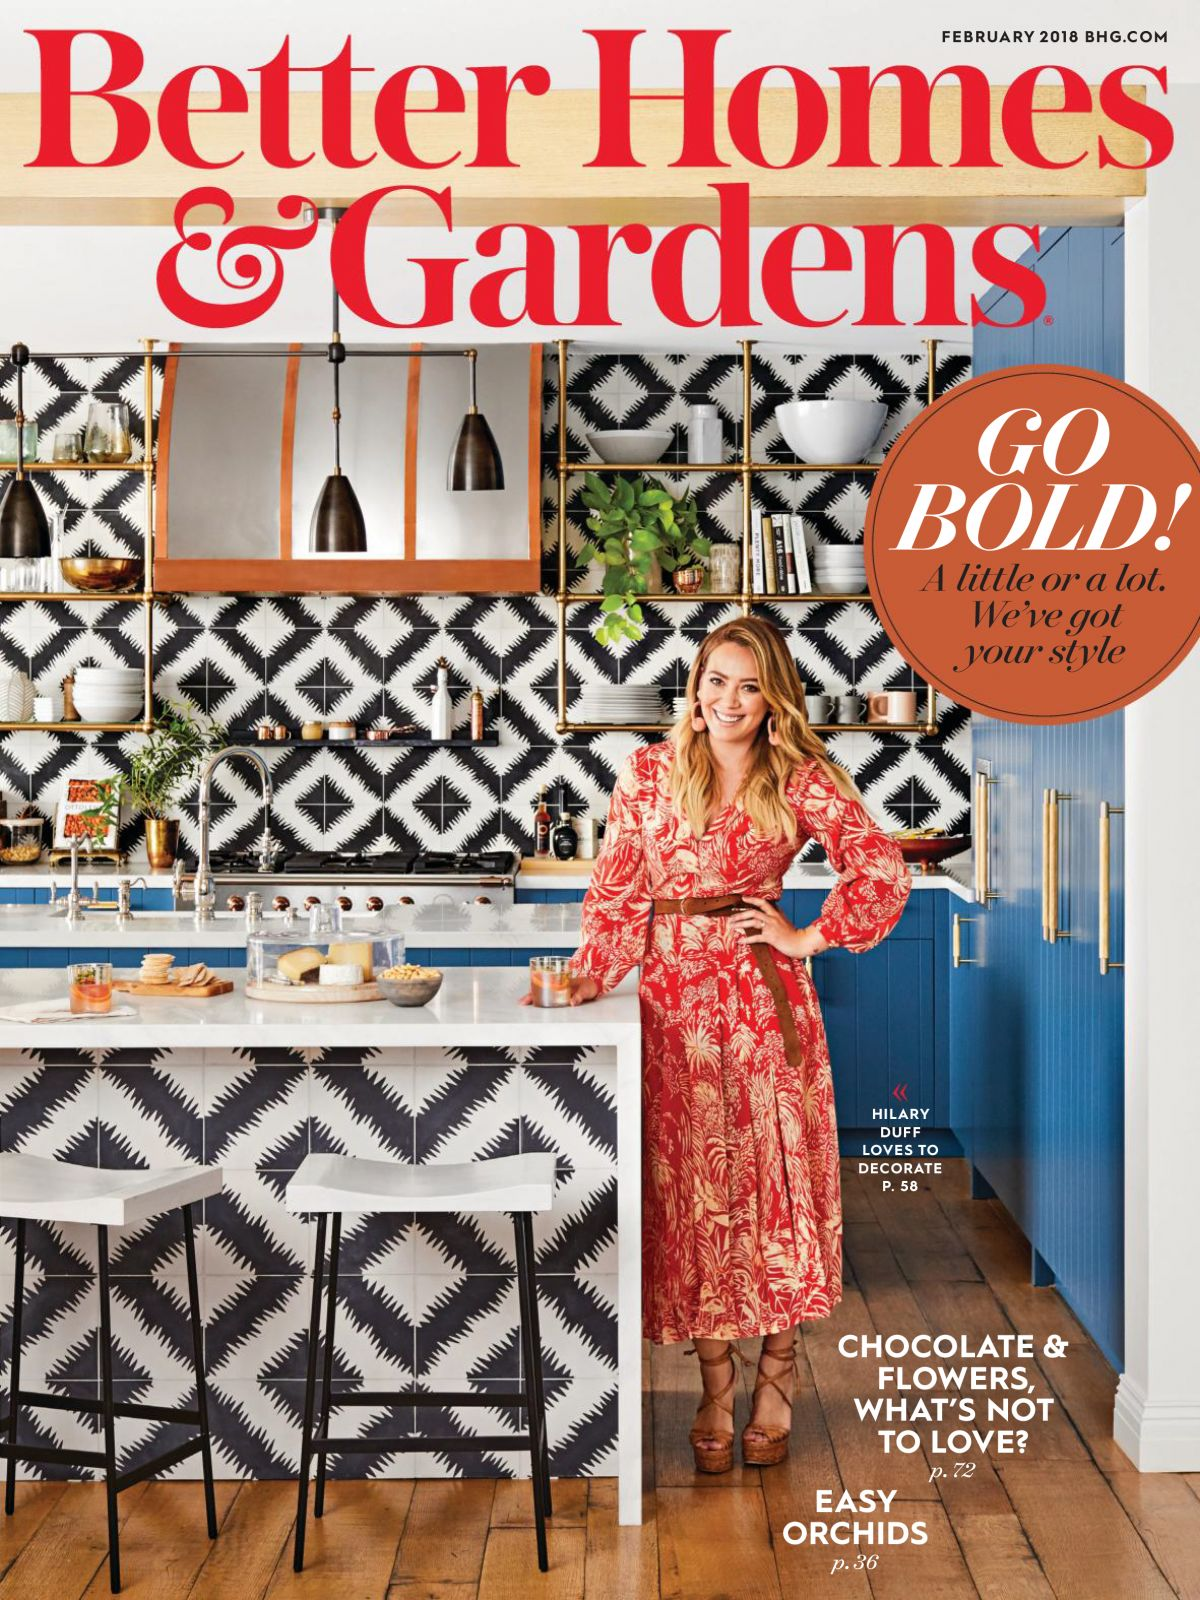 Hilary Duff In Better Home And Gardens Magazine February 2018